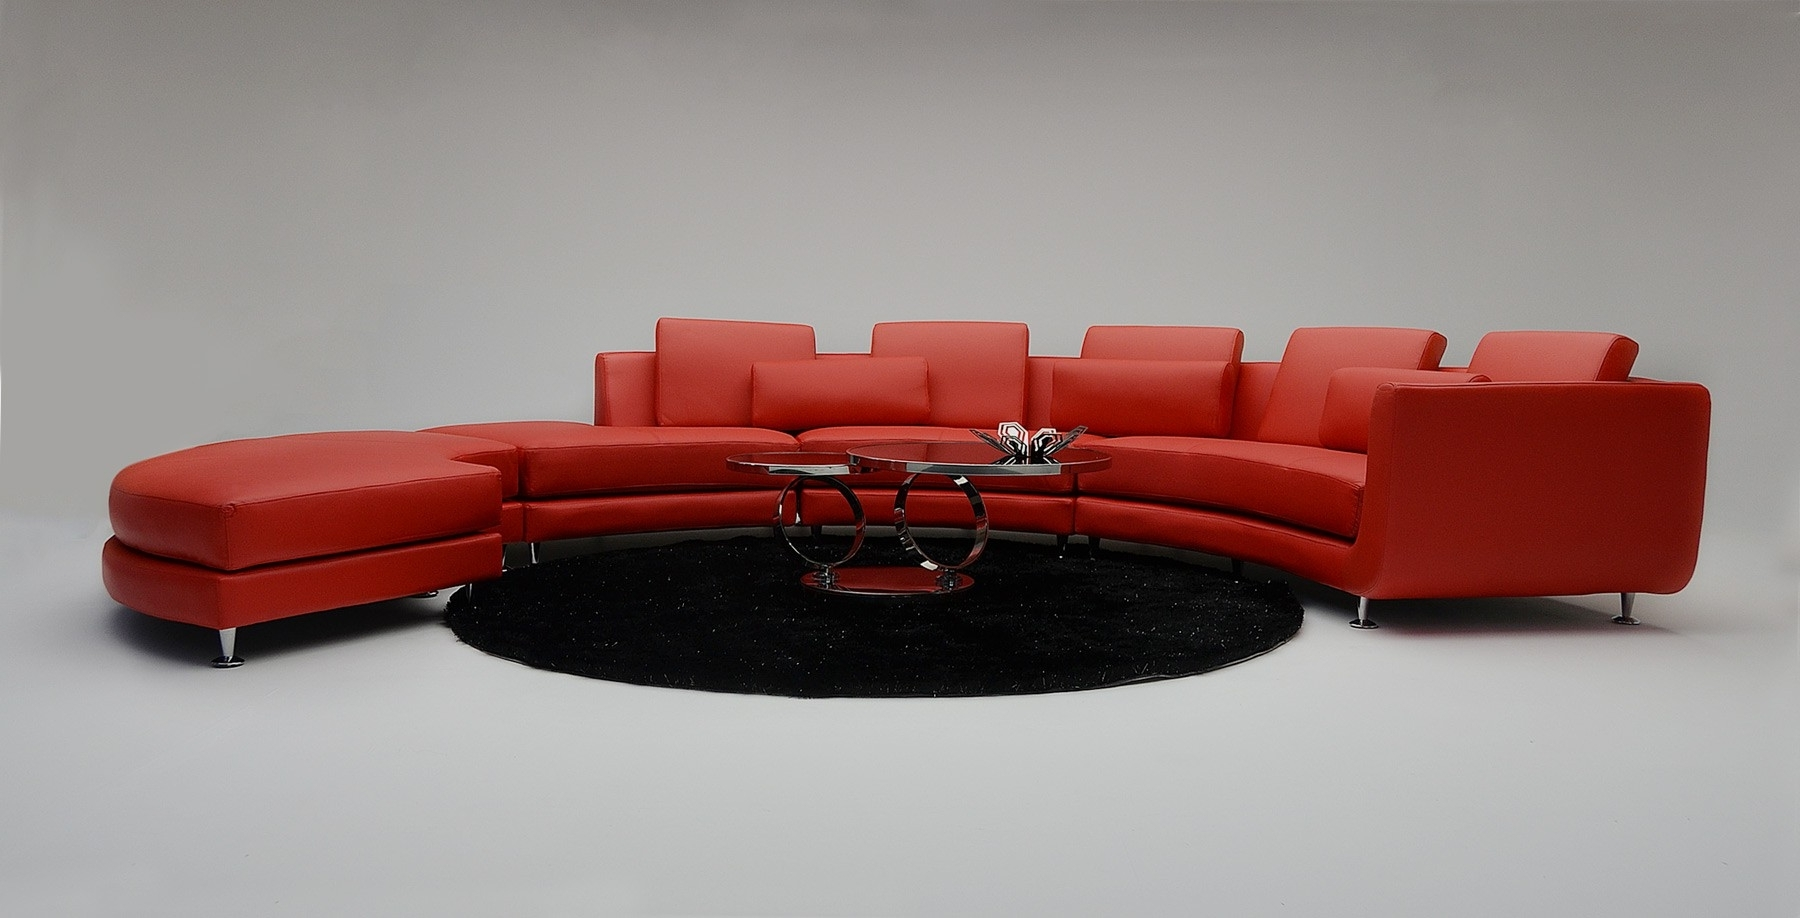 2017 100X100 Sectional Sofas With Furniture : Sectional Sofa 100 X 100 Sectional Sofa $250 Sectional (View 3 of 15)